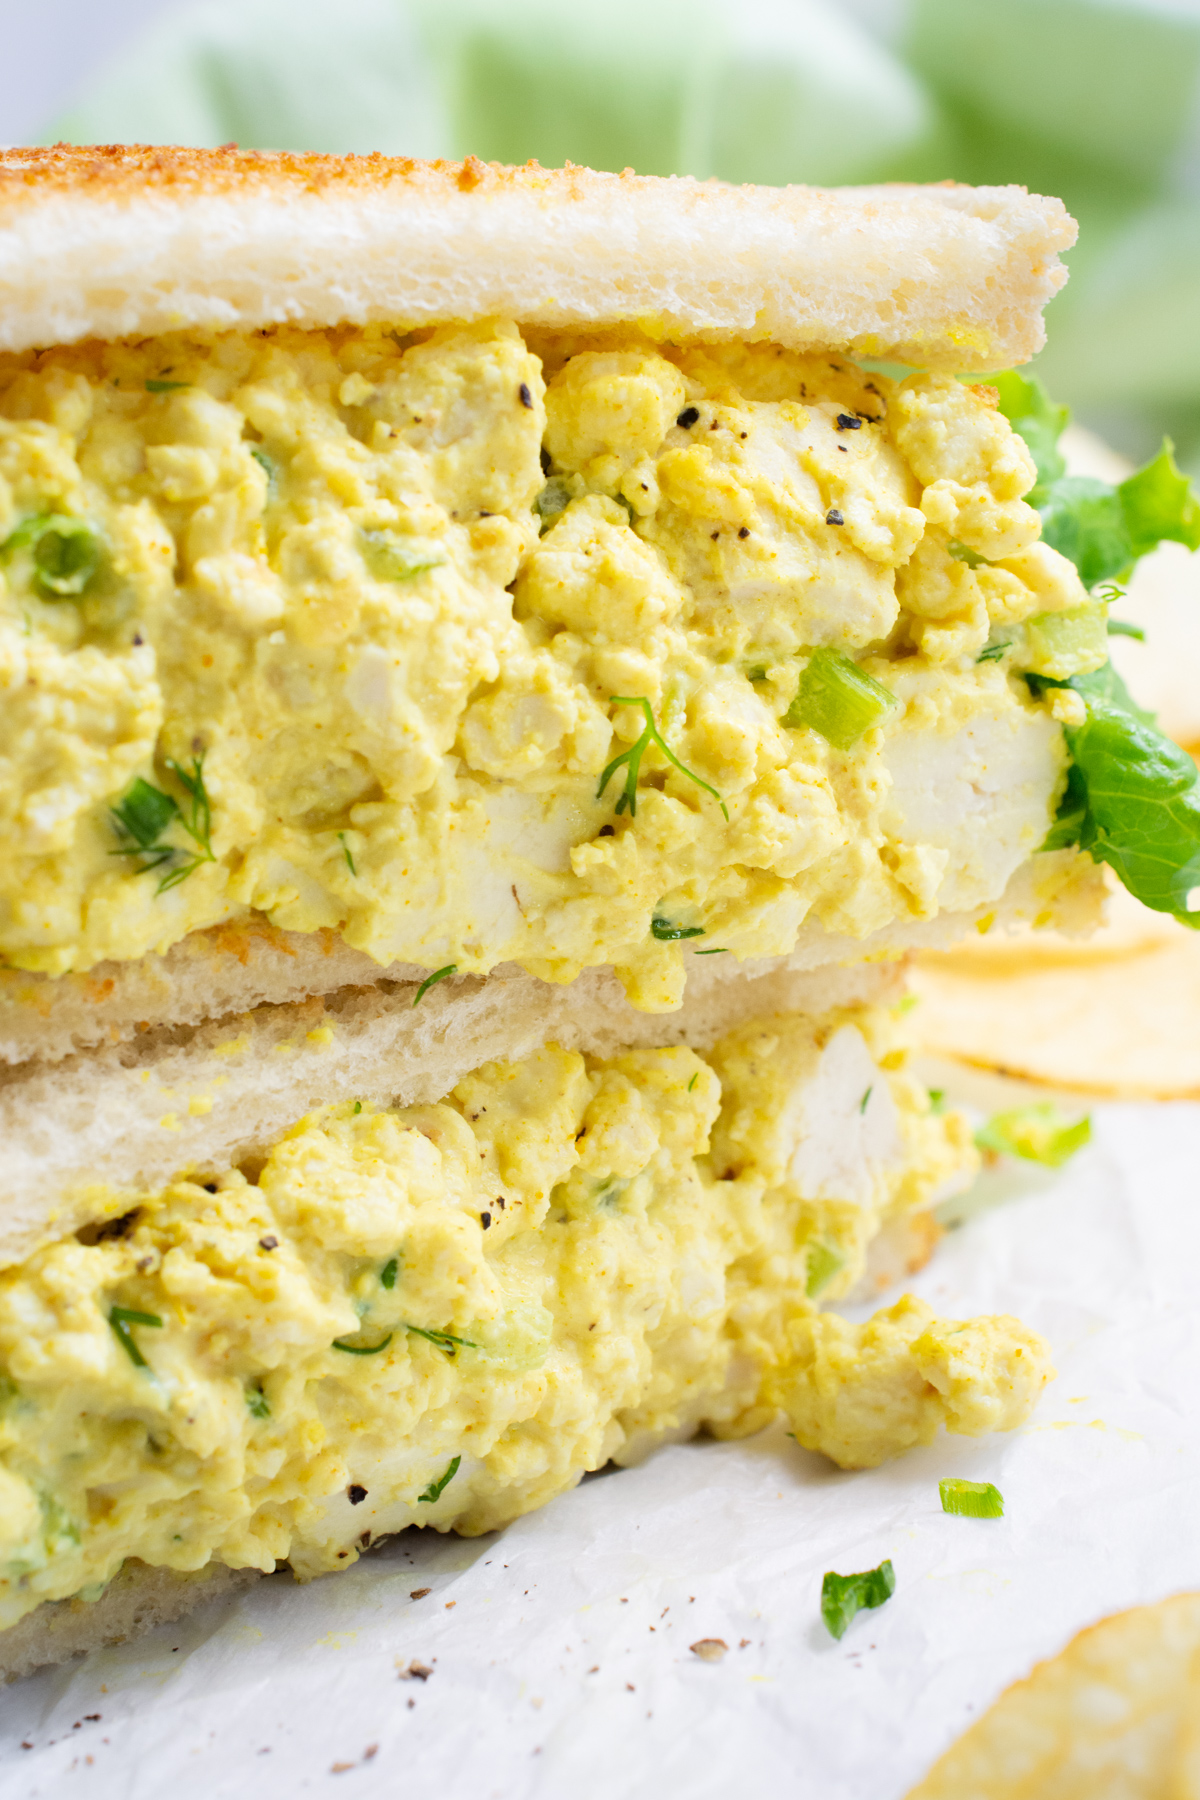 Vegan egg salad sandwich cut in half and stacked.